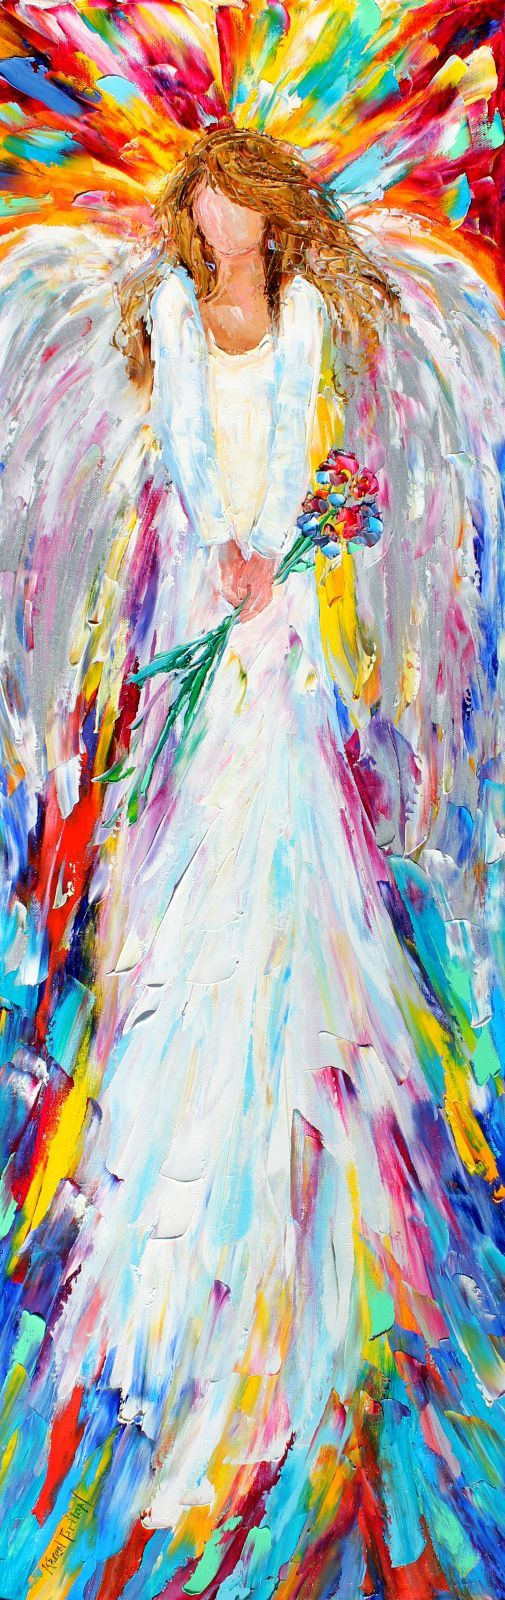 Original oil painting Angel palette knife impasto by Karensfinear